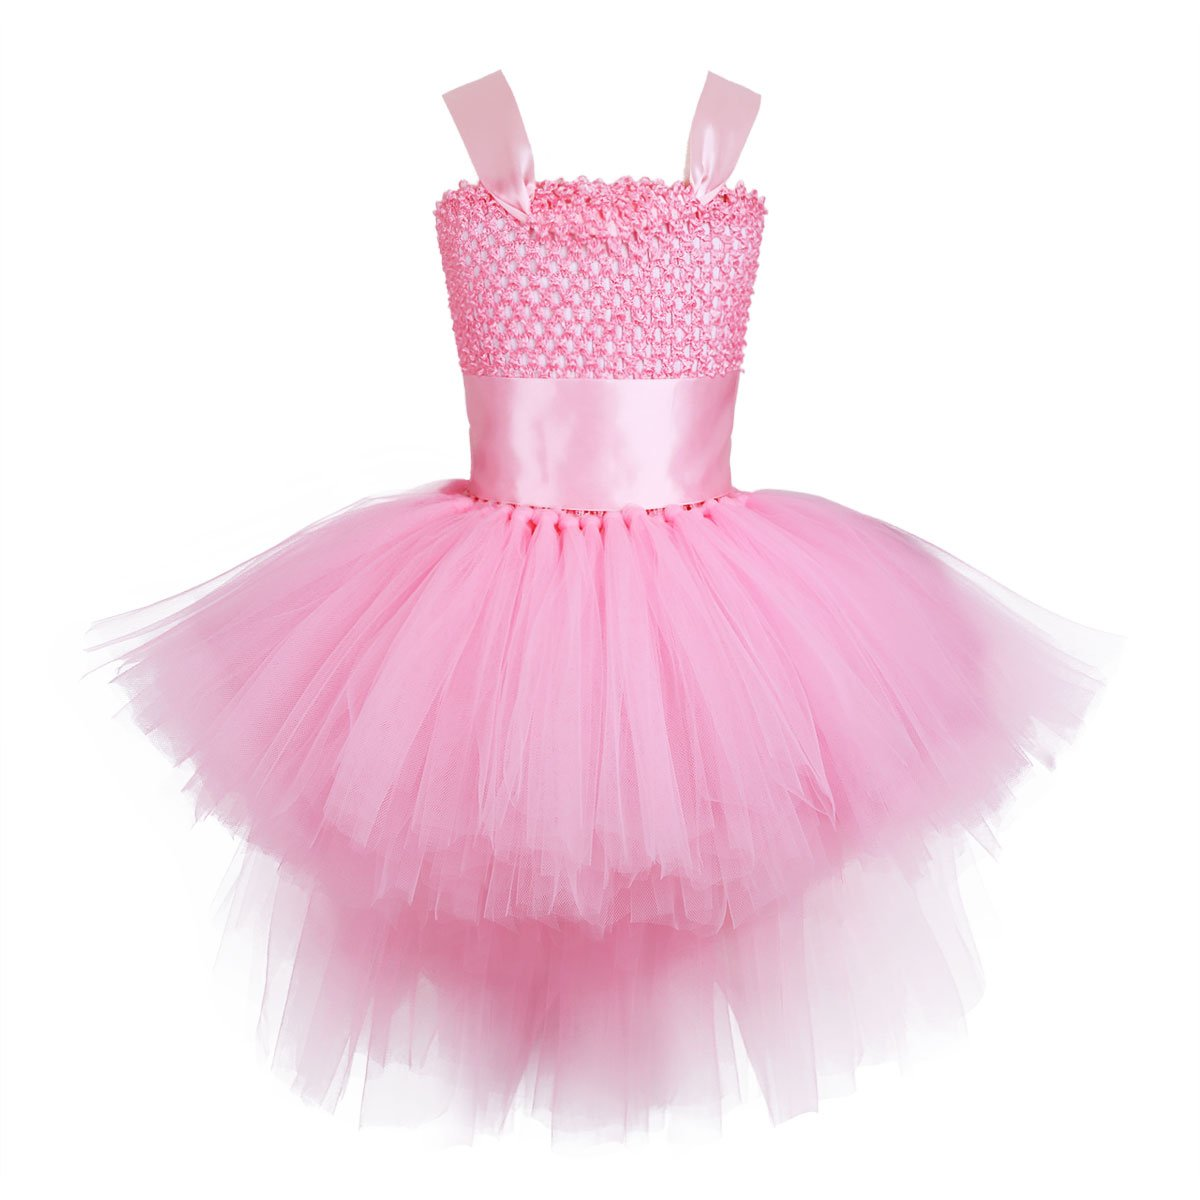 YiZYiF Girls Kids Handmade Hi-Low Party Birthday Pageant Wedding Tutu Dresses Dance Costumes Pink 3-4